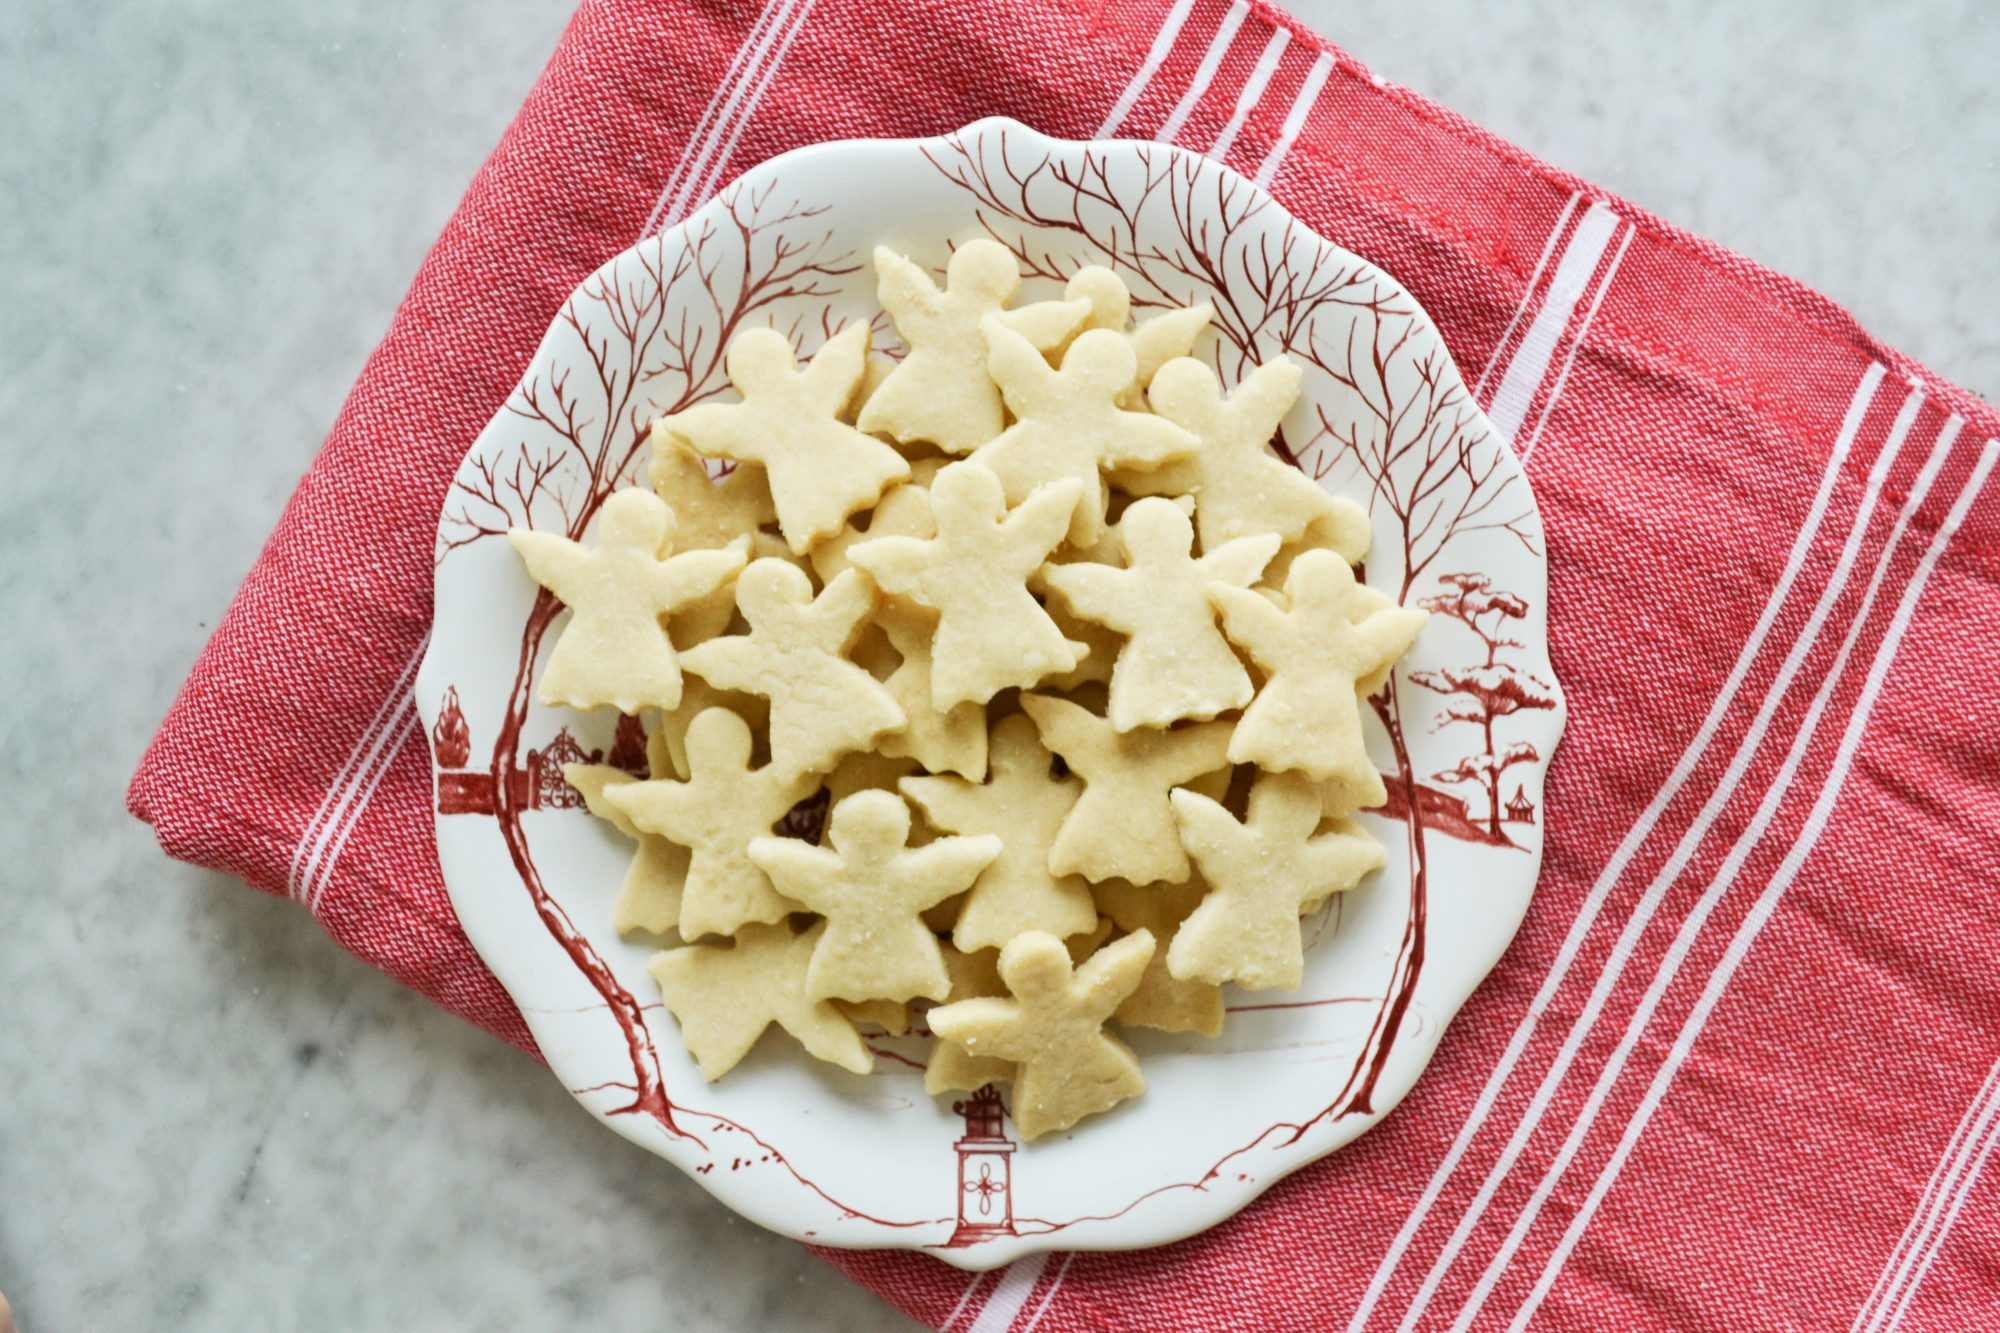 Miss Iona's Shortbread Cookies